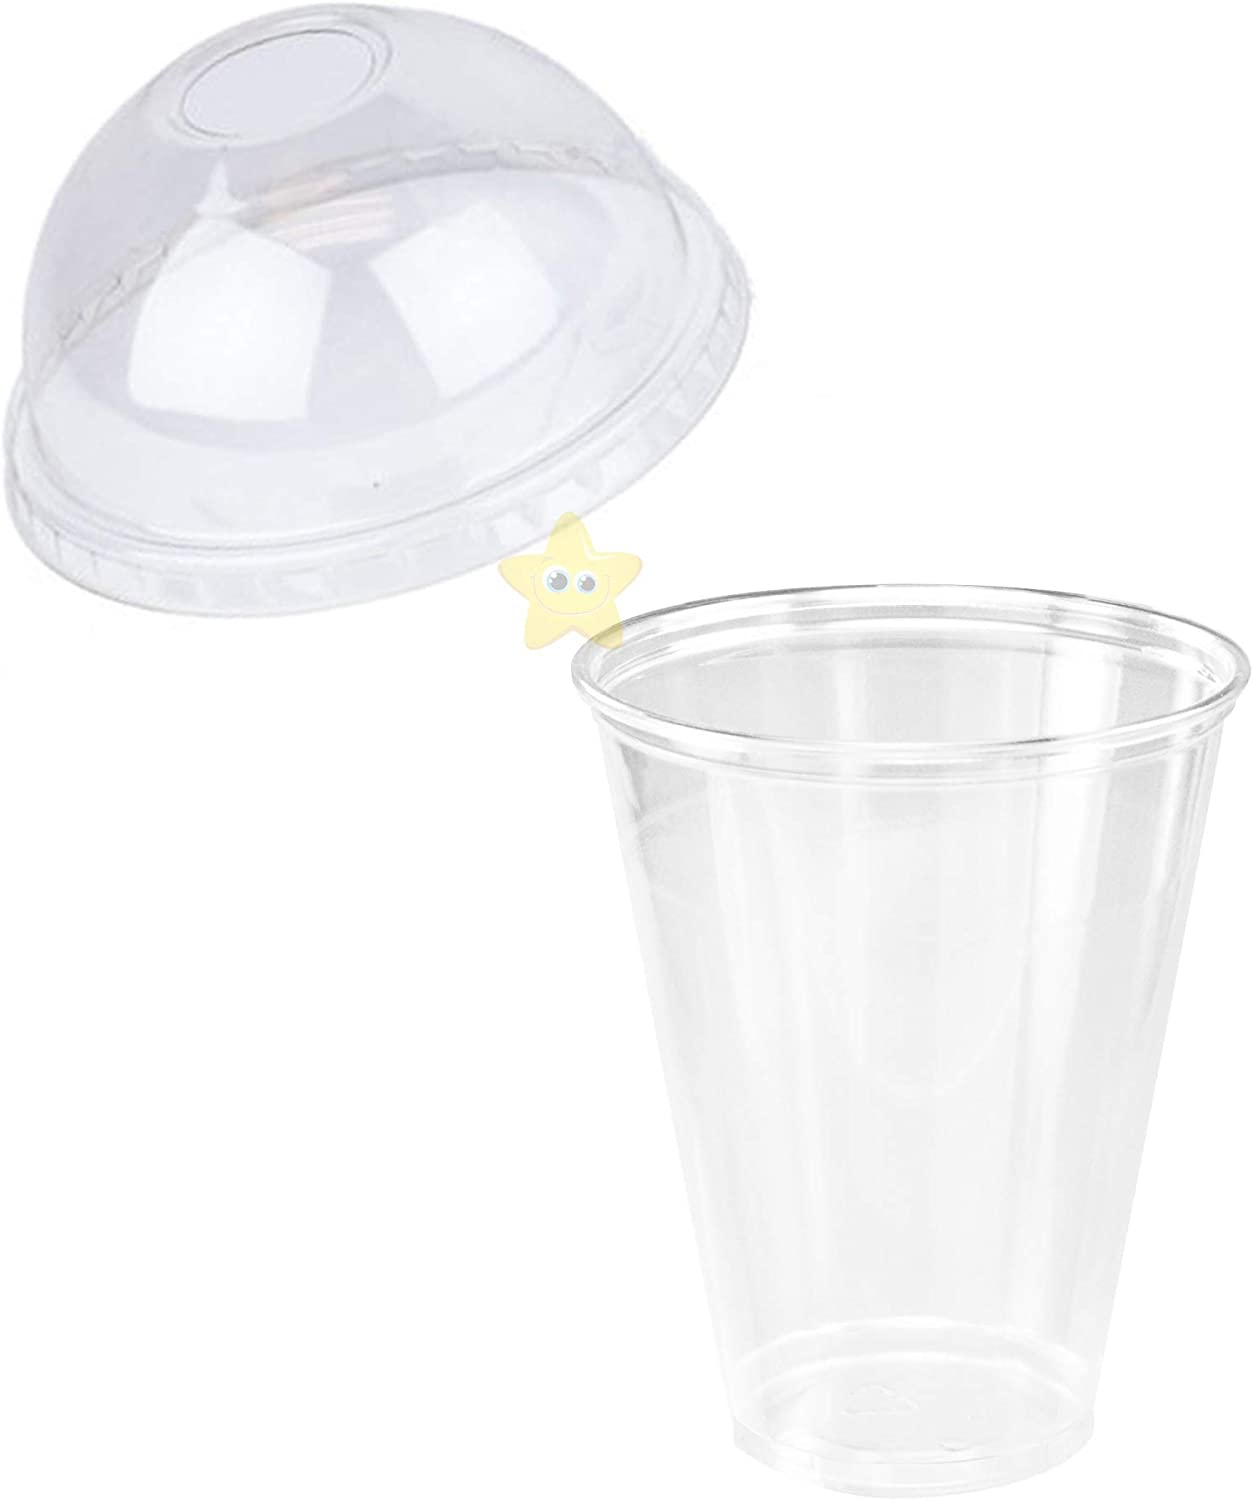 50pcs Milk Tea Cup Hard Plastic Disposable Drinking Transparent Takeaway Juice Cups with Lid for Iced Coffee Sodas 300ml